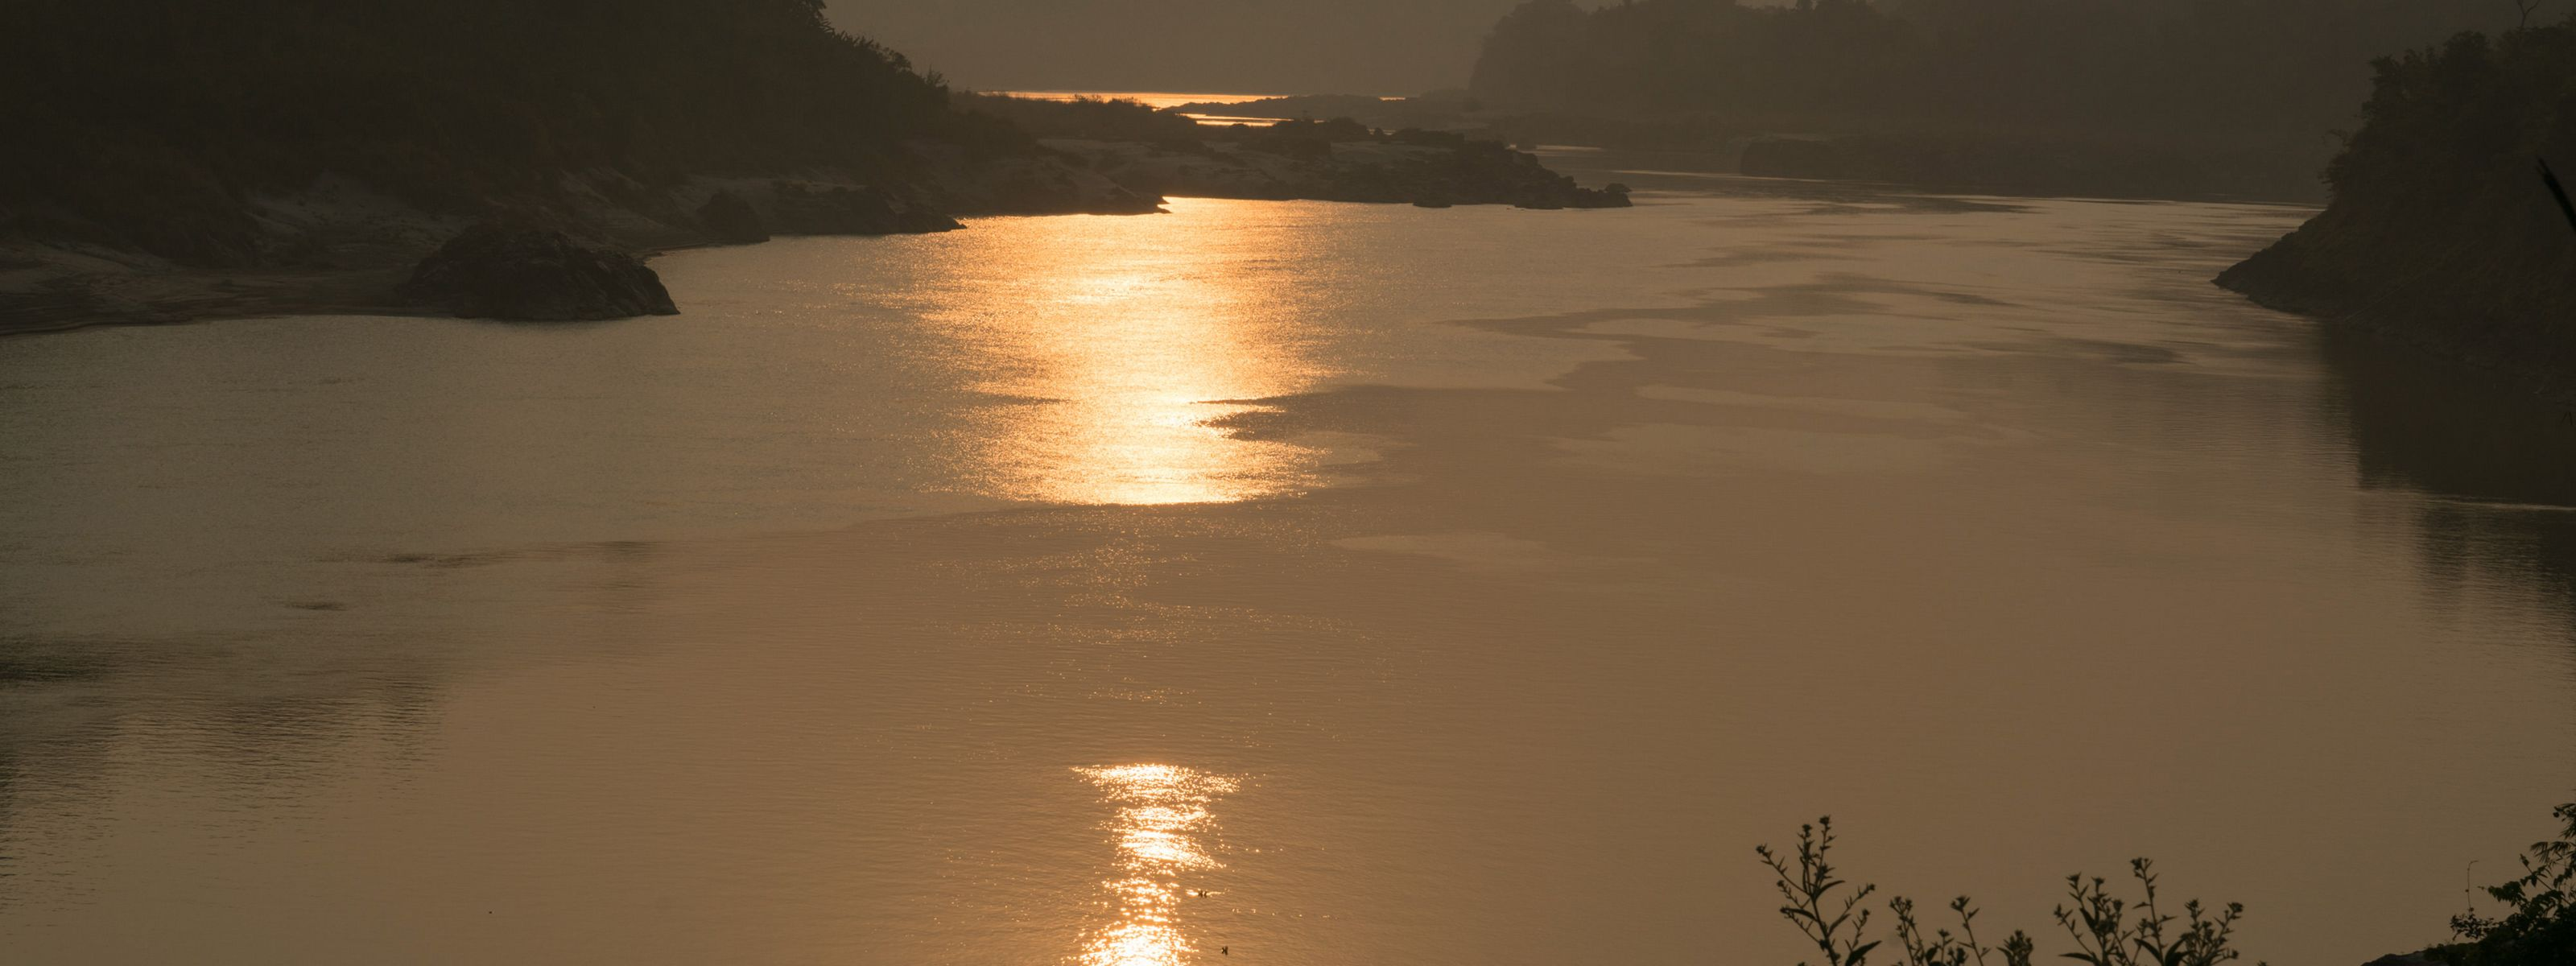 are a popular tourist attraction in Kachin State, Myanmar. These two rivers meet here to form the Irrawaddy River.